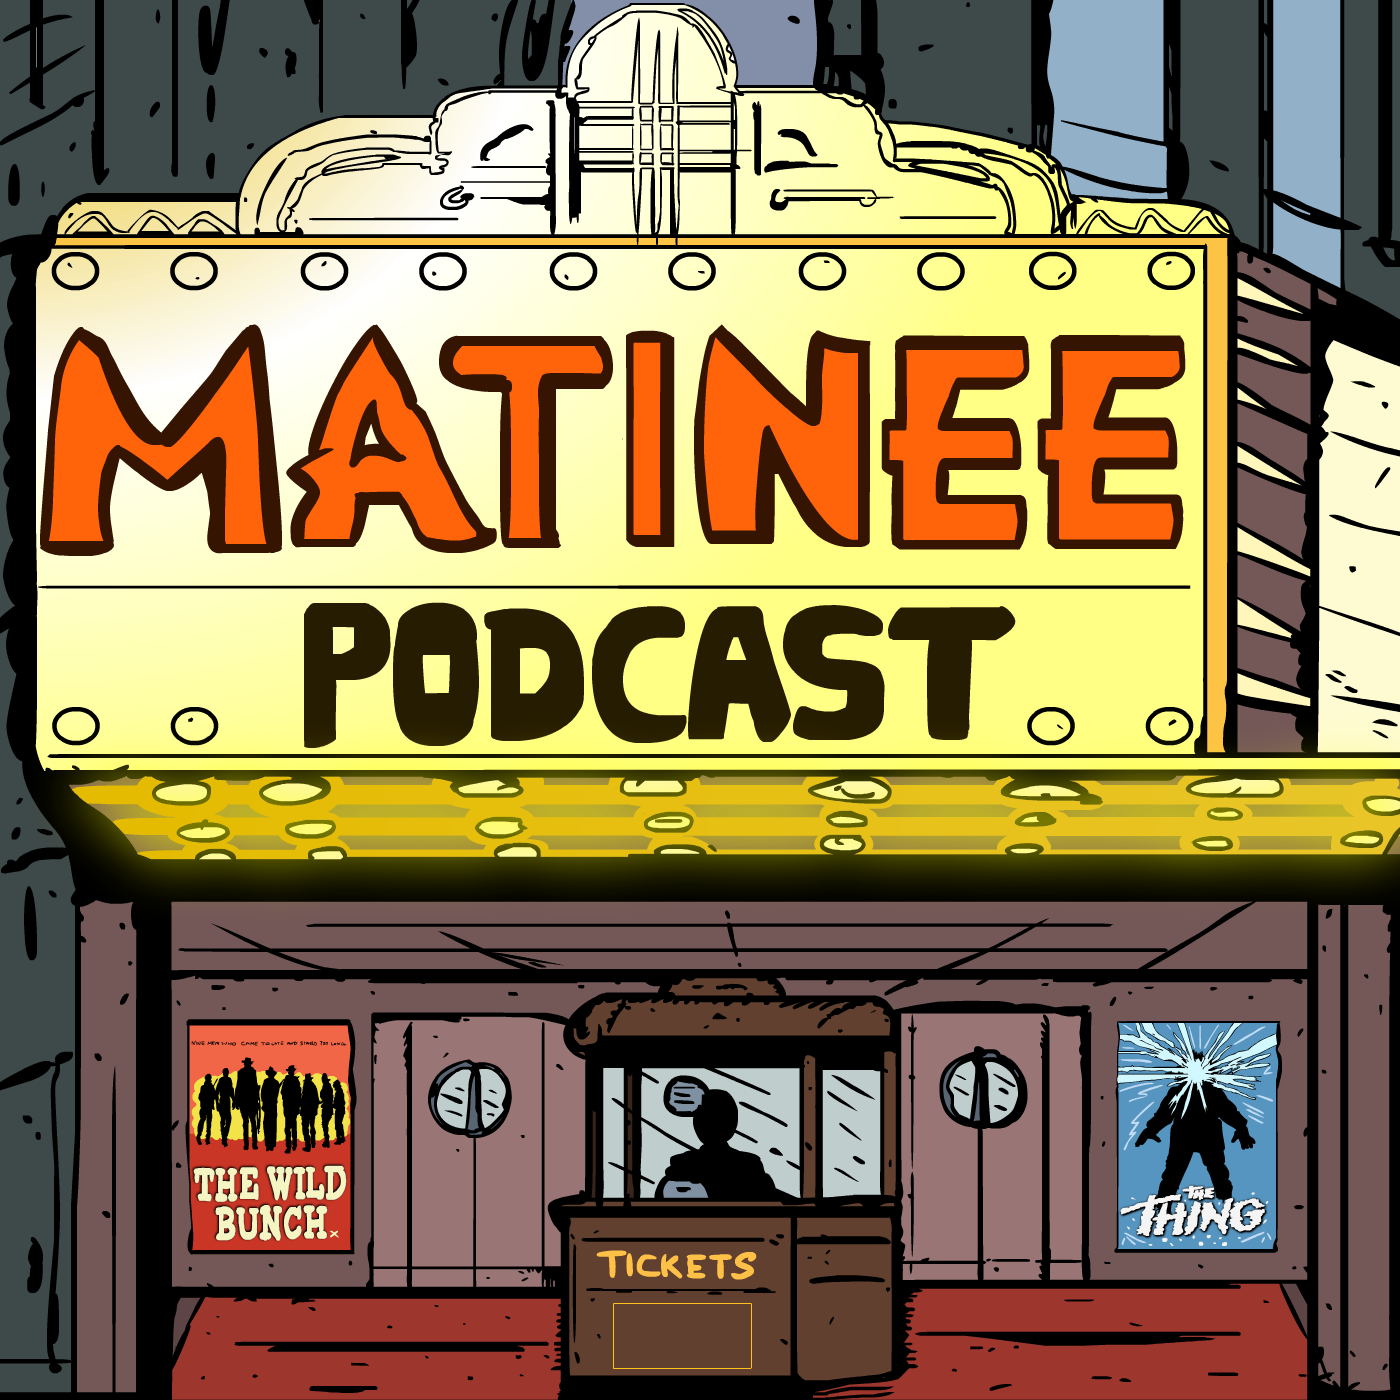 Matinee Podcast.